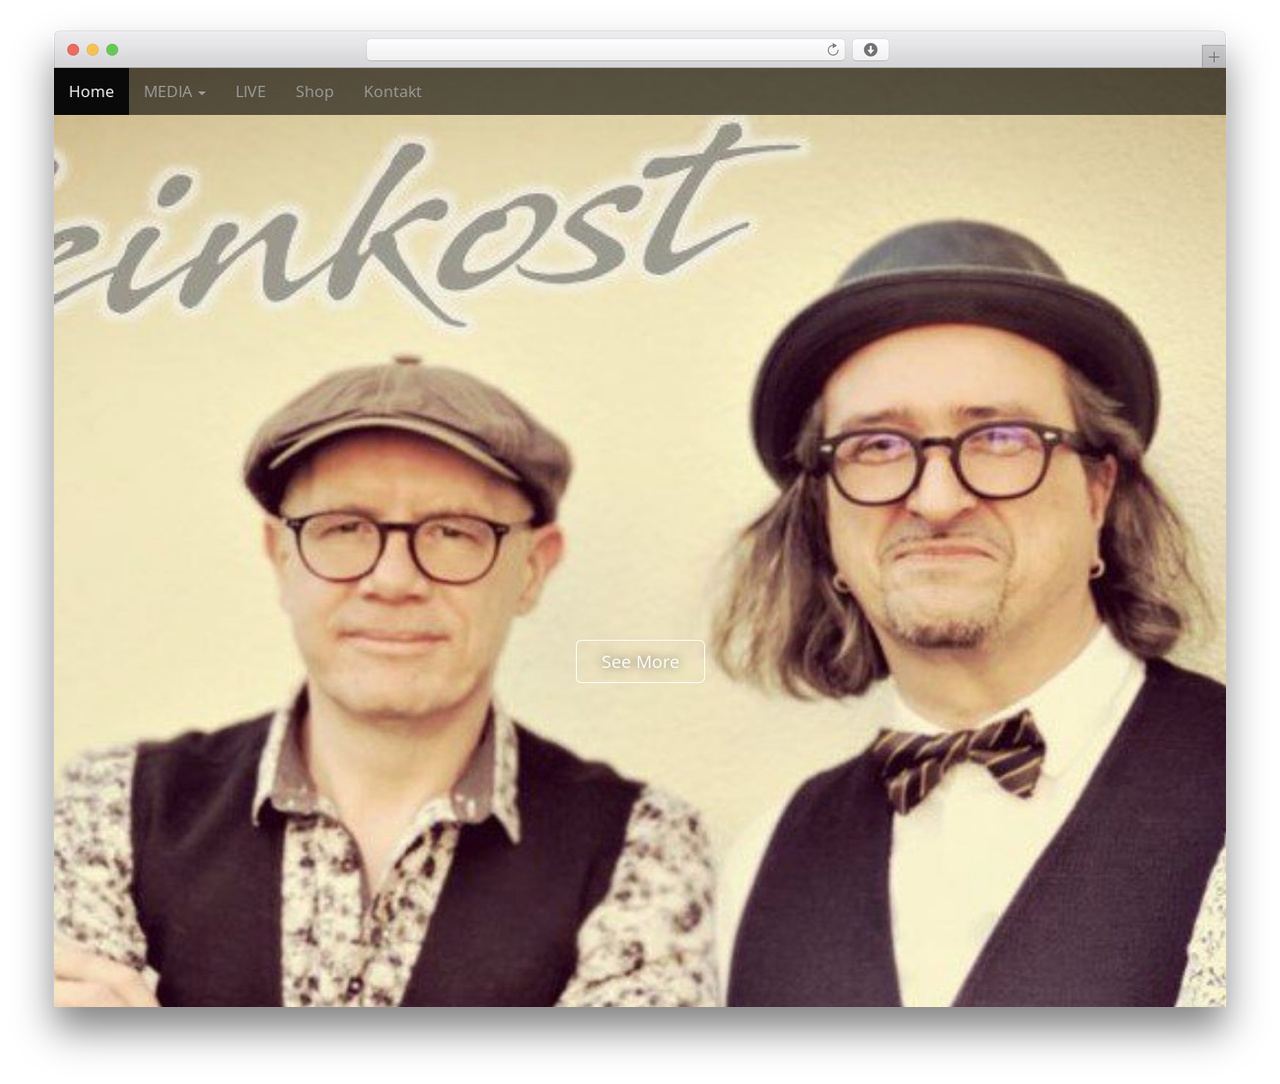 Arcade Basic free WordPress theme - feinkost-live.de